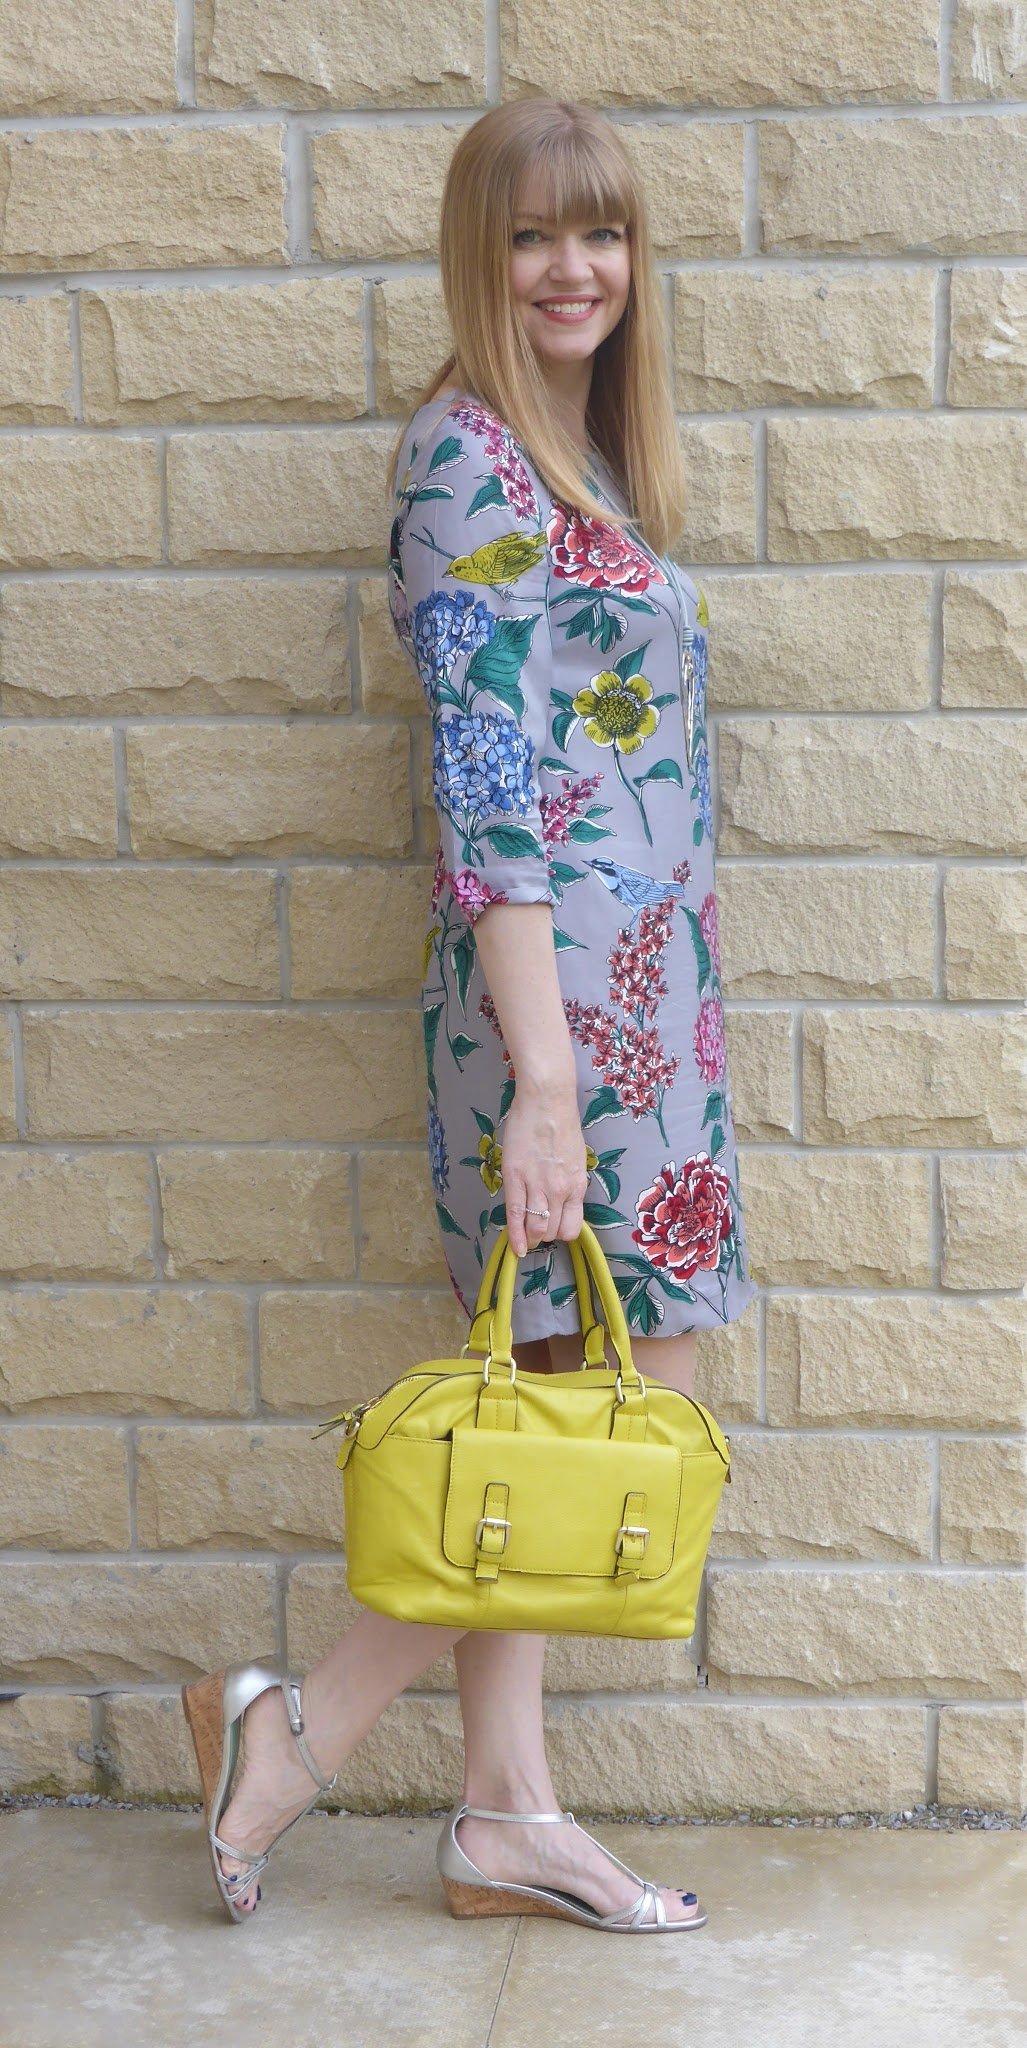 What Lizzy Loves wearing Boden Eliza tunic dress with silver sandals and yellow handbag